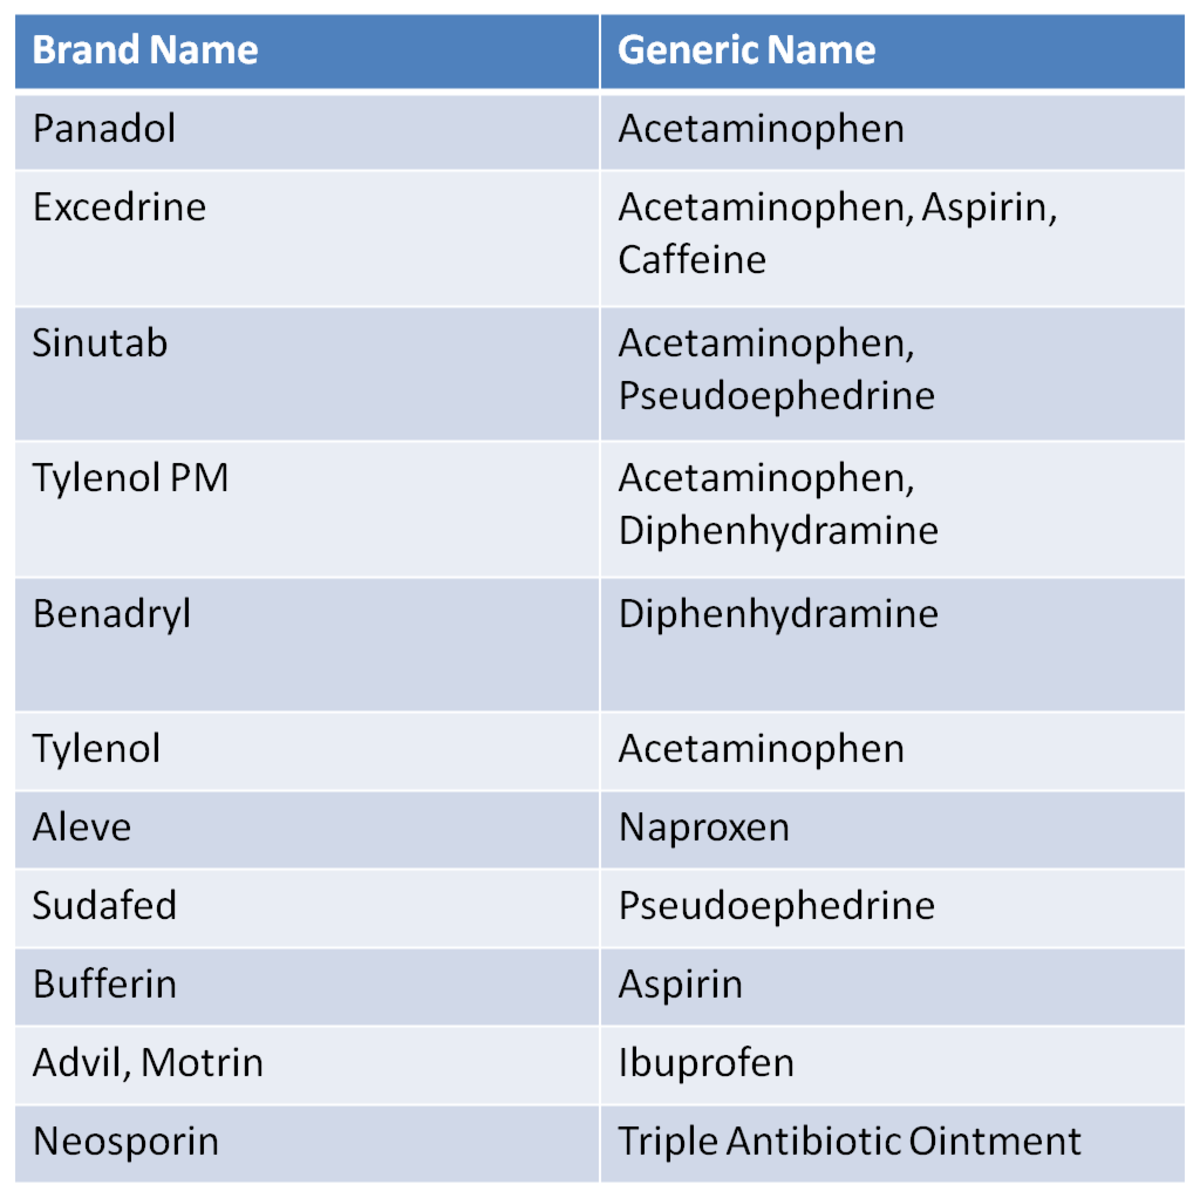 Azithromycin generic and brand names